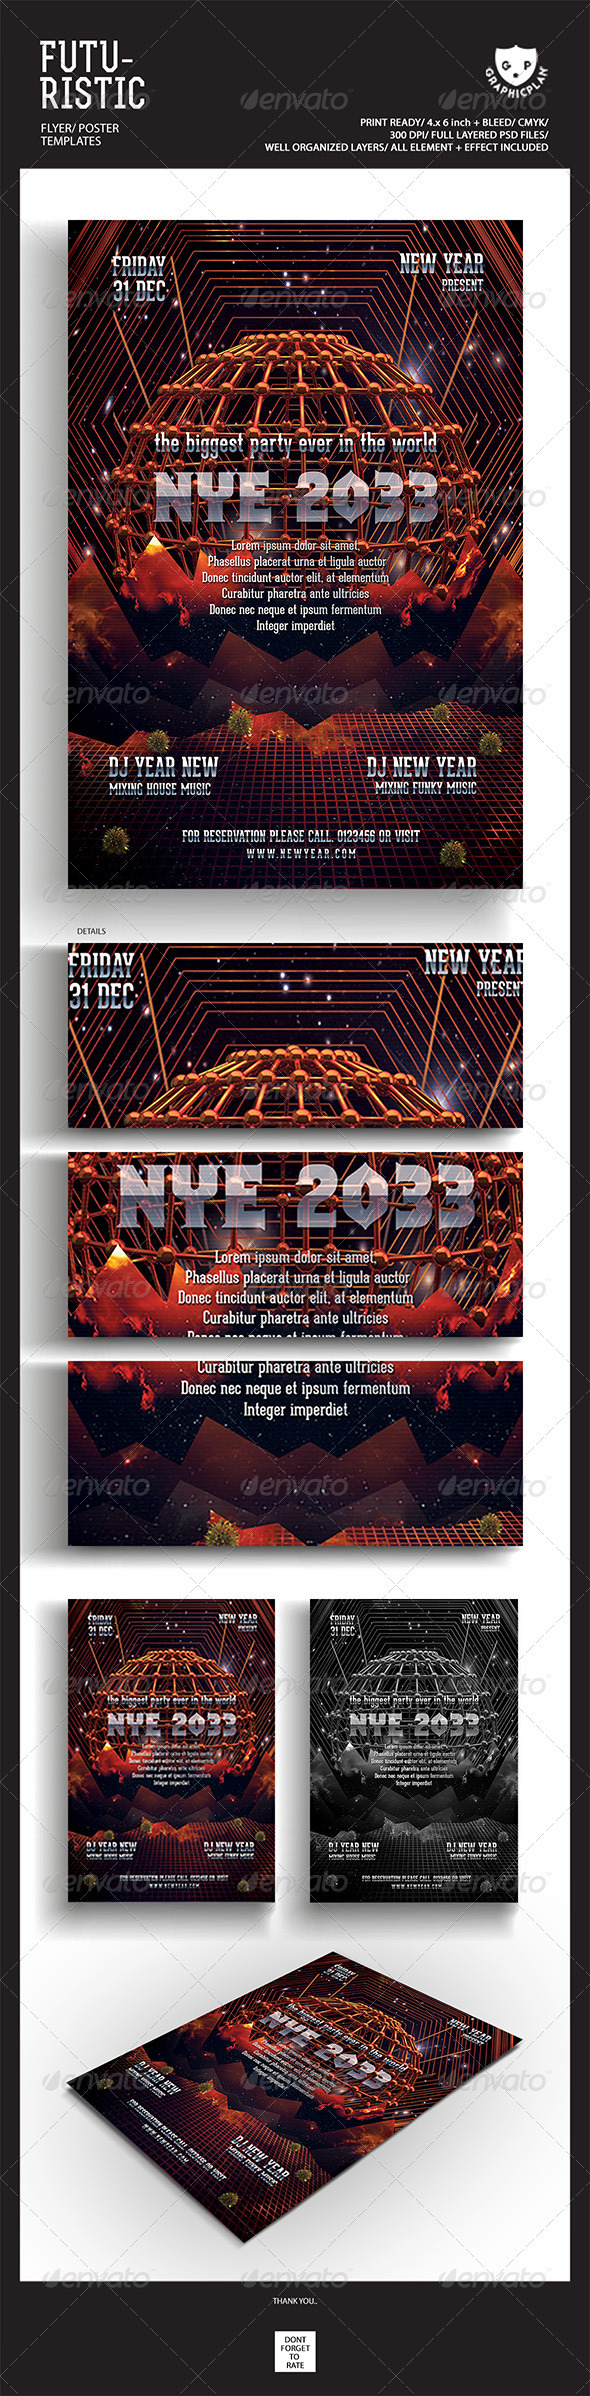 Nye 2013 Retro Futuristic Flyer Templates  - Events Flyers